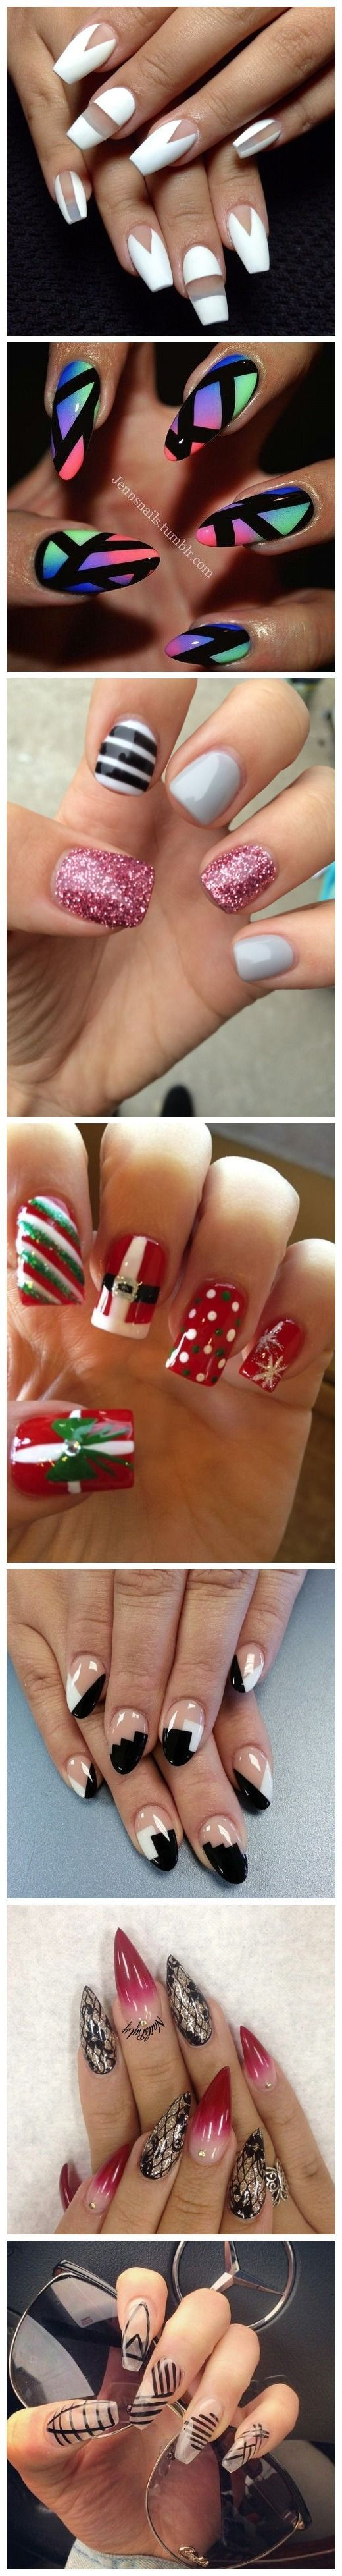 7 Cute & Easy Fall Nail Art Designs, Ideas, Trends & Stickers 2015 ...